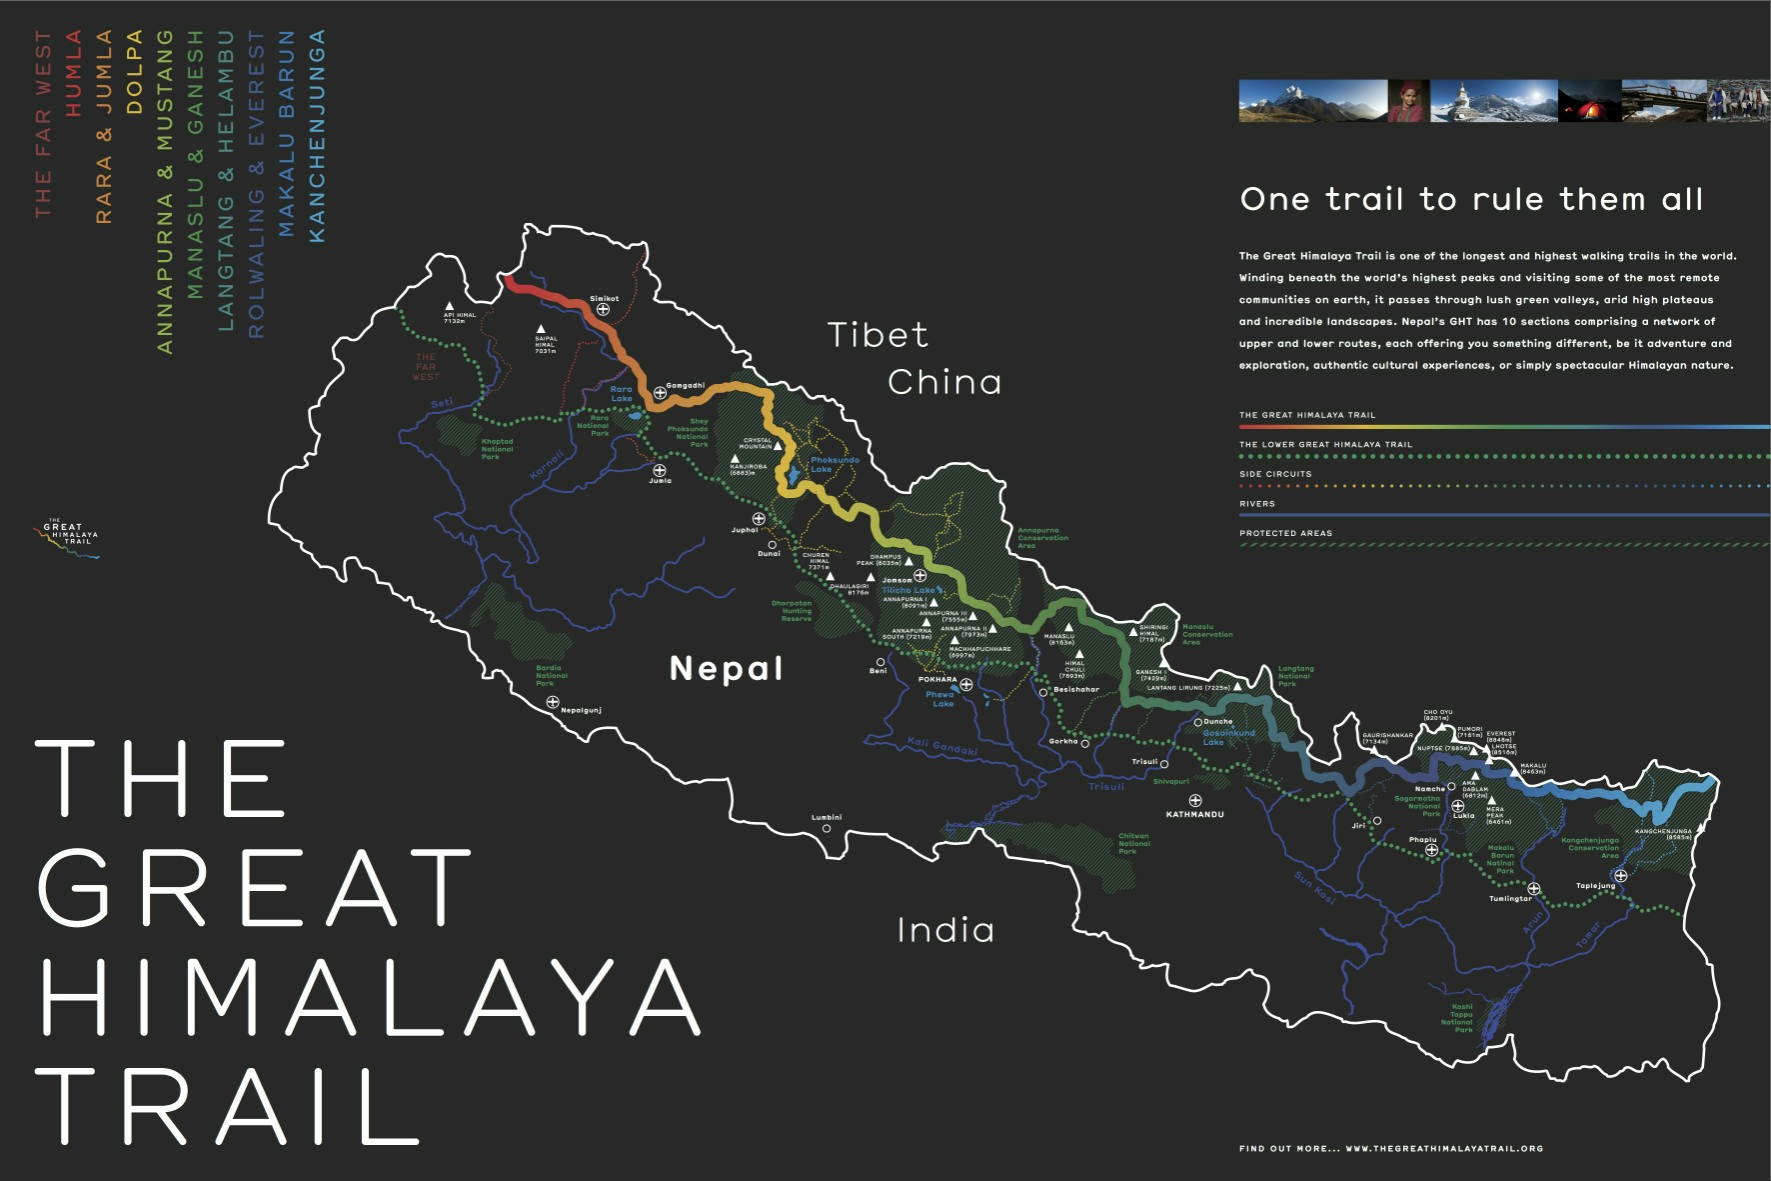 Great_Himalaya_Trail_Stylised_Map_Poster.jpg